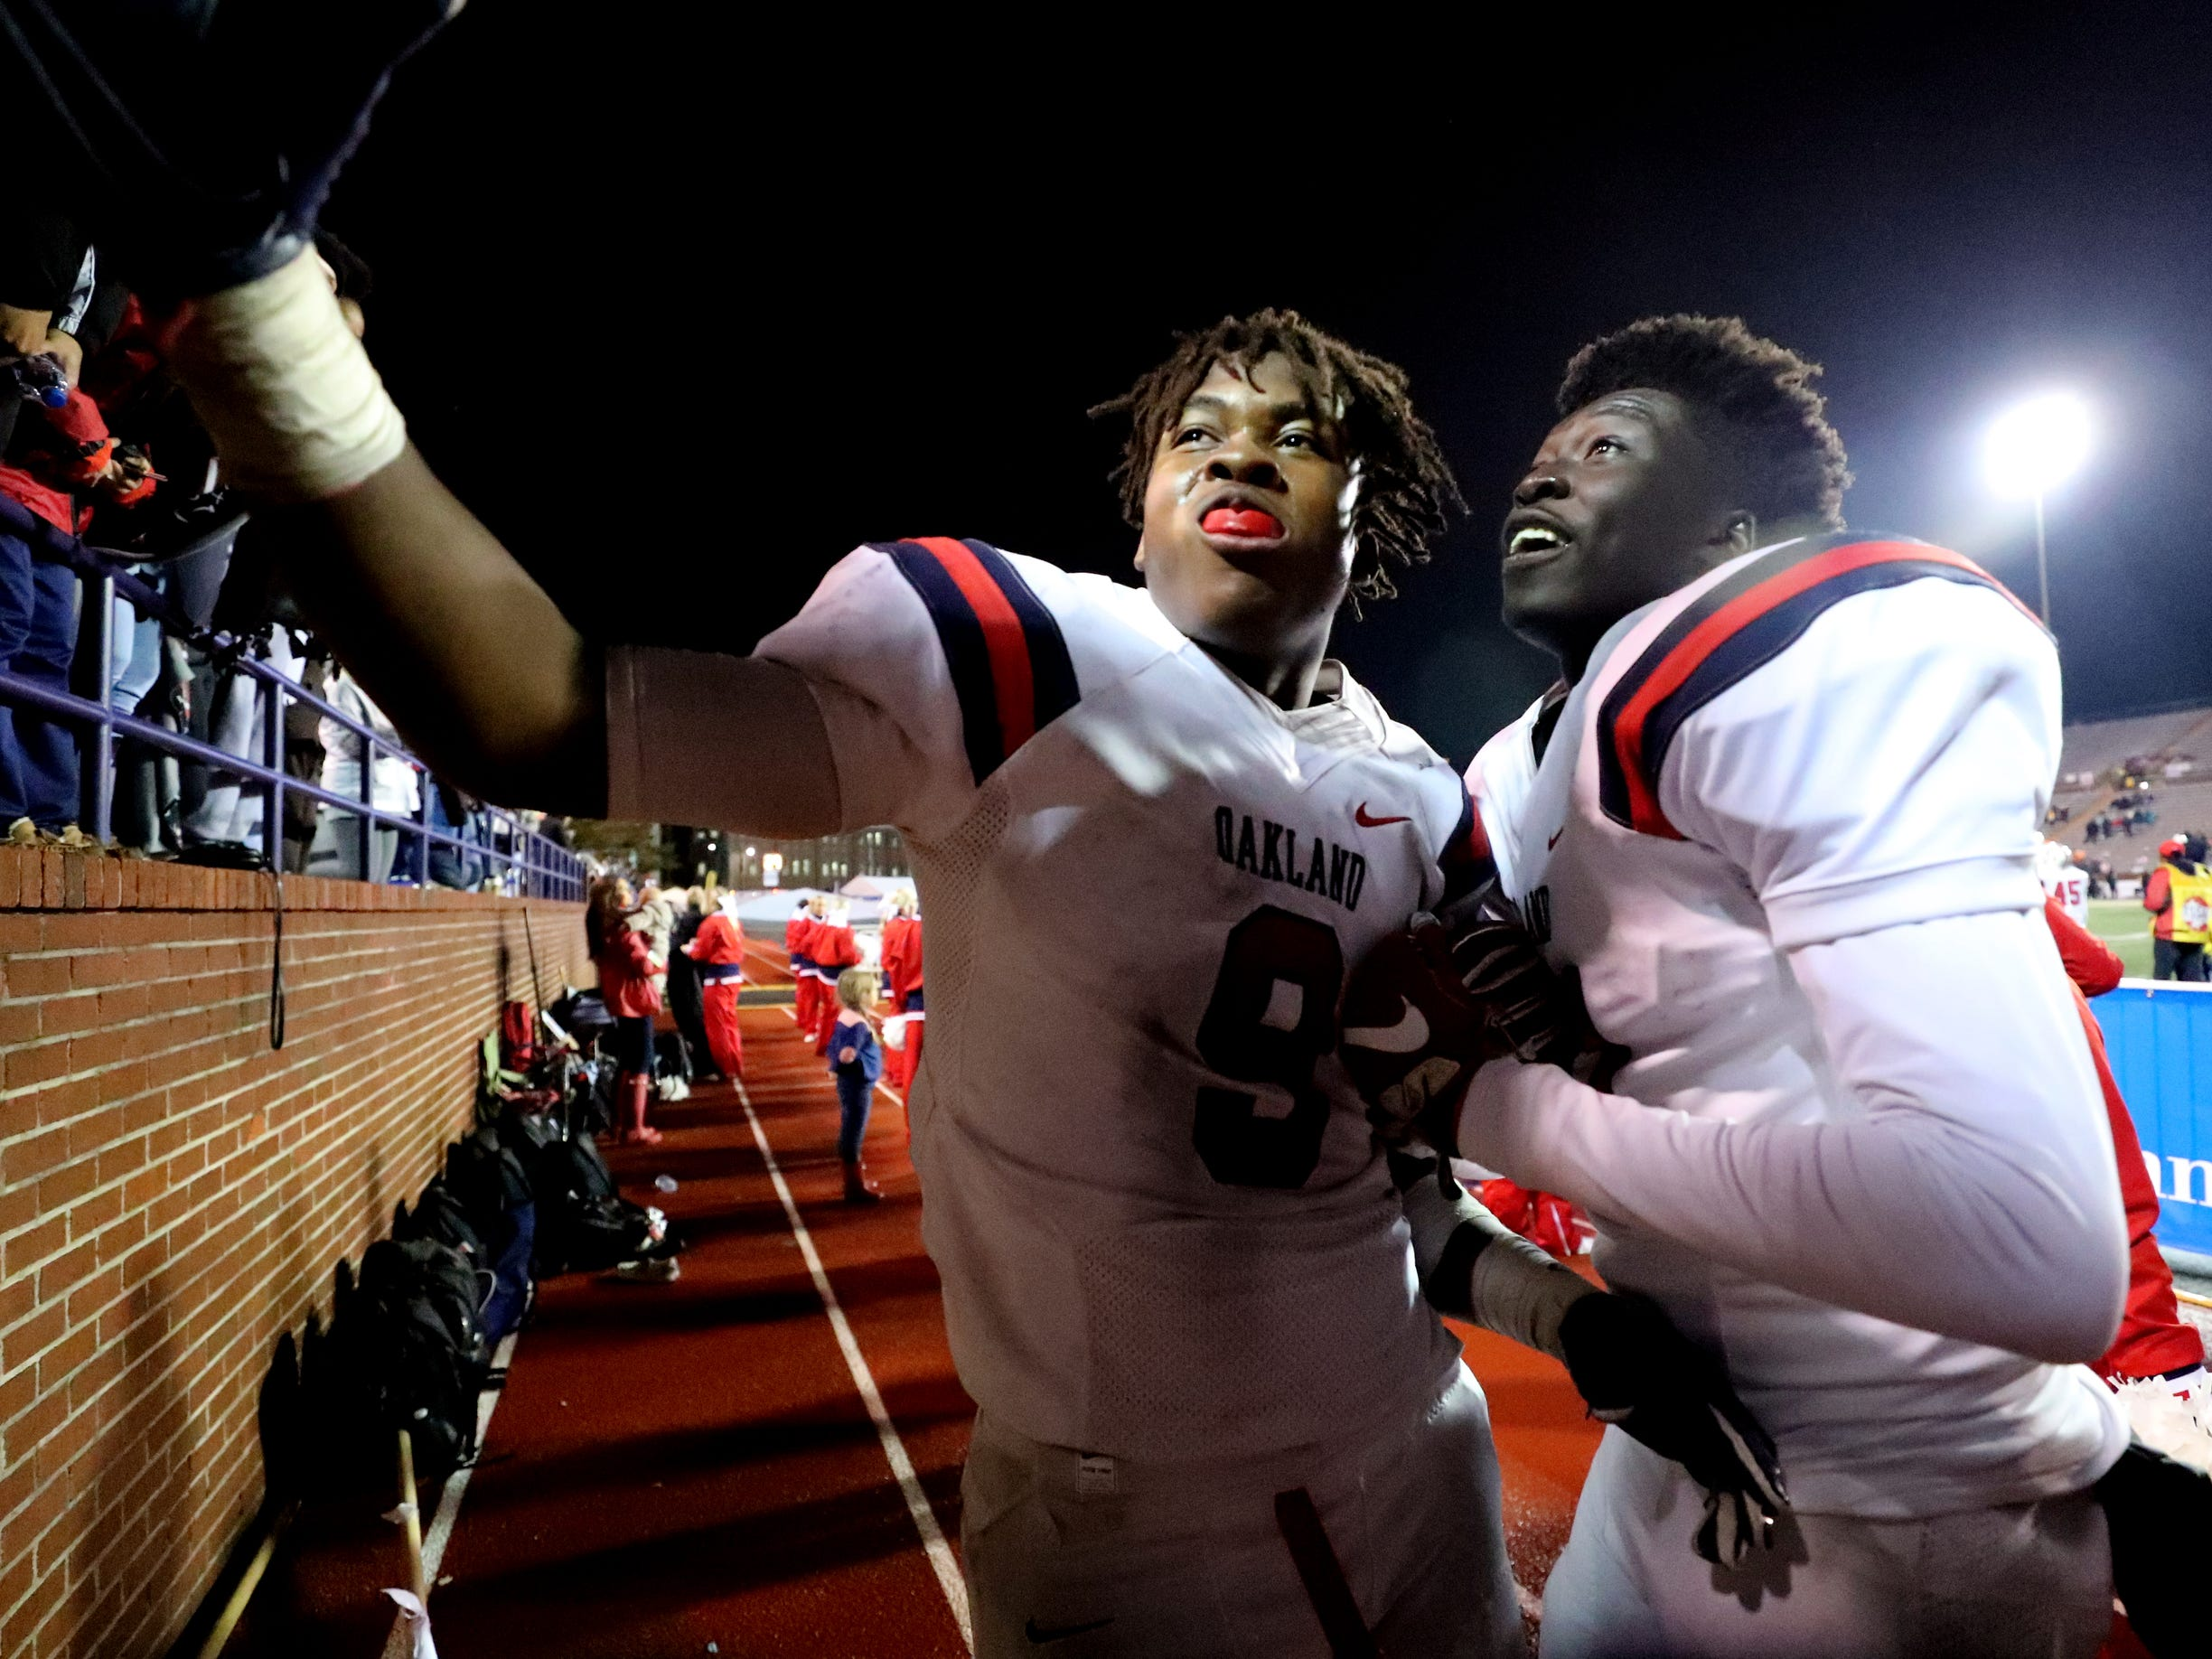 Oakland's Tekoy Randolph (9) and Dixon Luwaju (81) celebrate with the fans late in the 4th quarter of the game against Whitehaven during the 6A State Championship BlueCross Bowl game on Thursday, Nov. 29 2018.